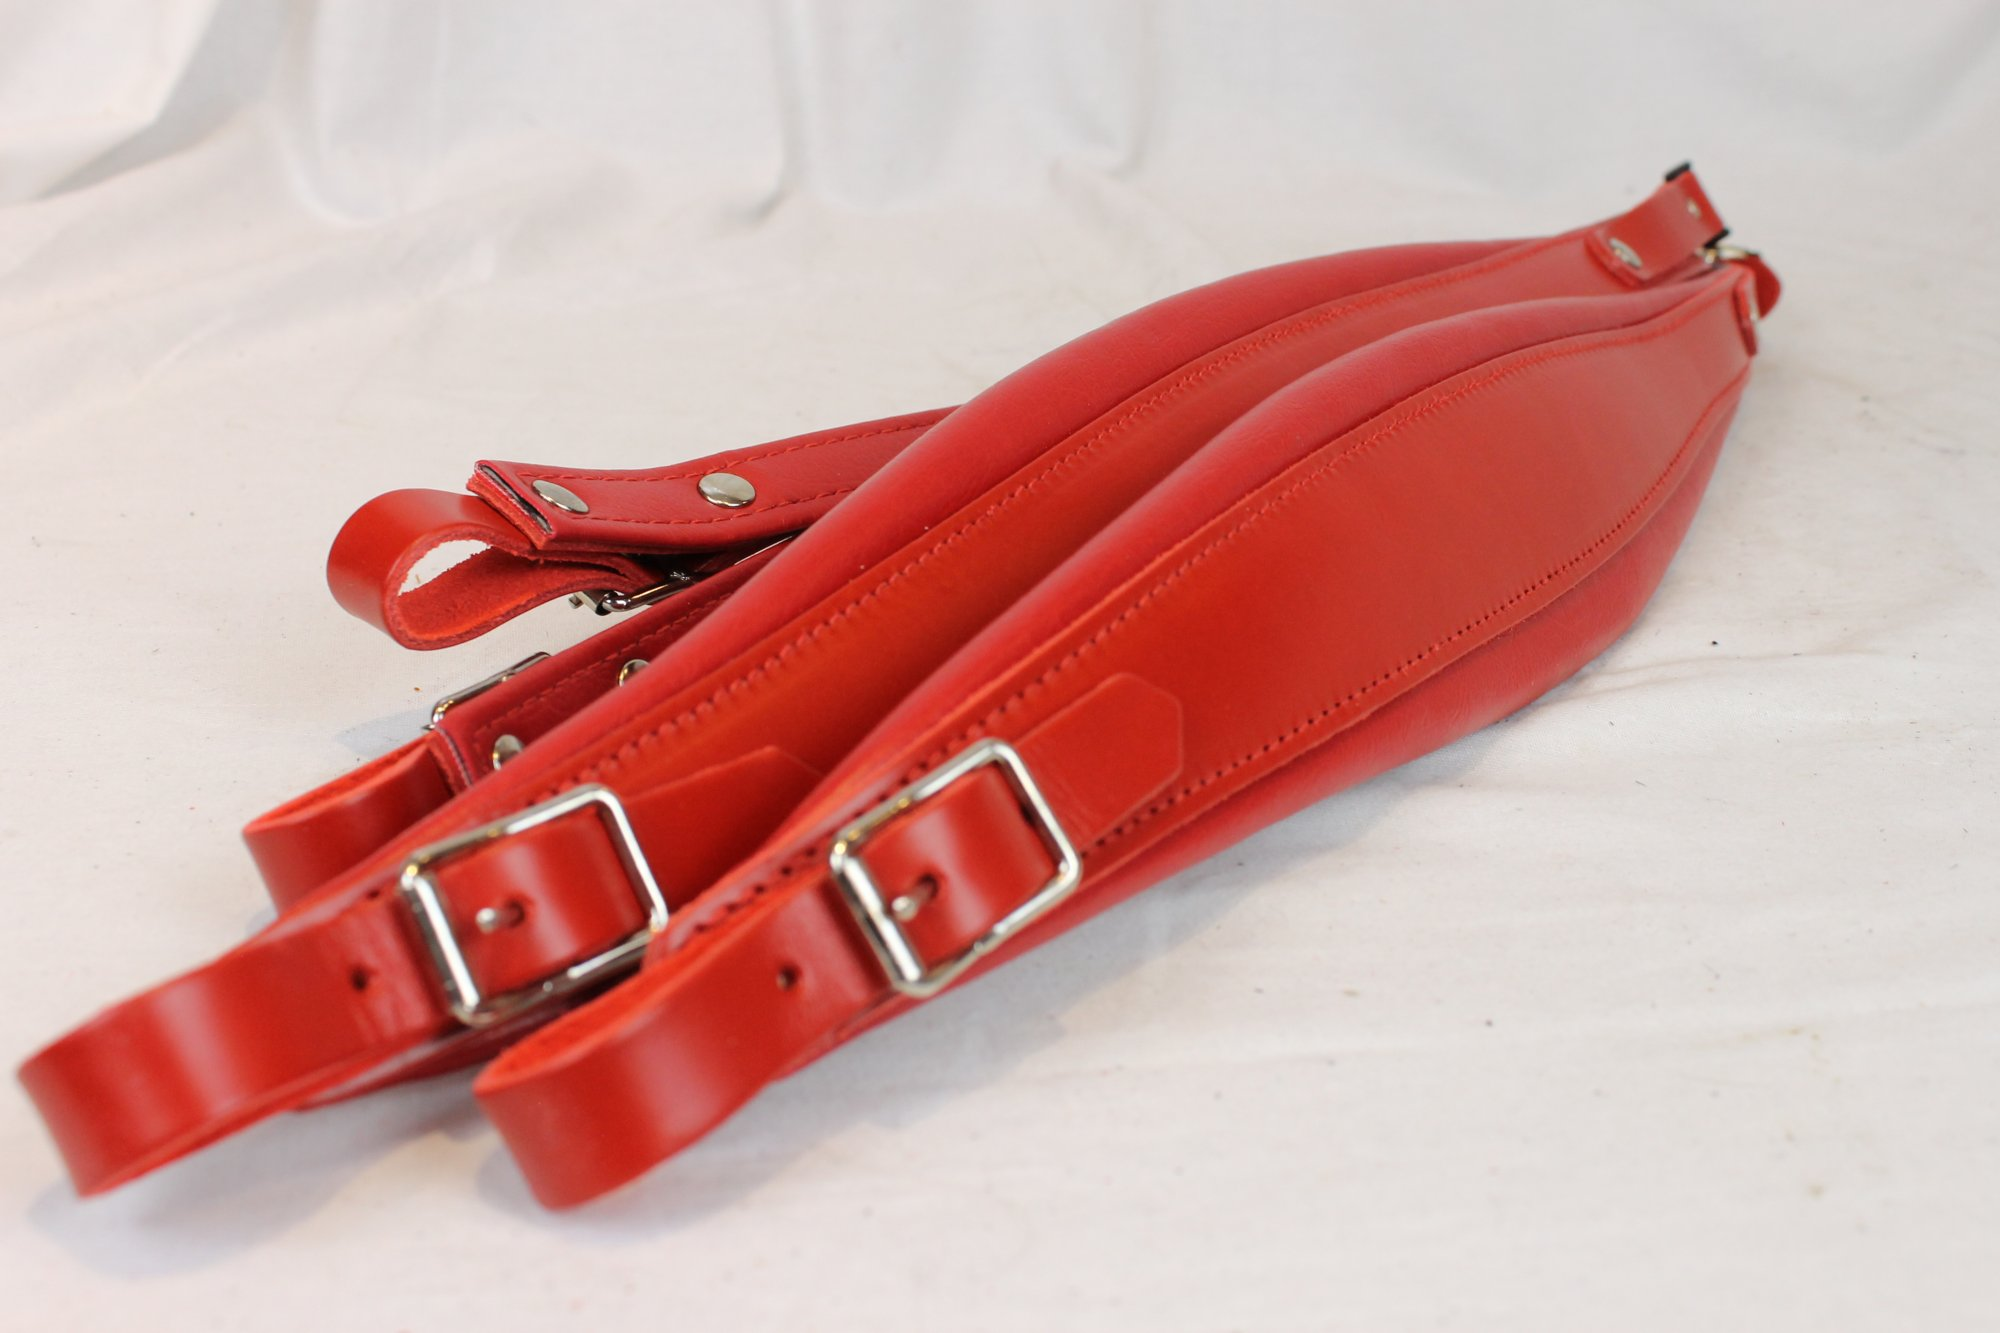 New Red Leather Fuselli Accordion Shoulder Straps With Back Straps Width (9cm / 3.5in) Length  (95cm-115cm / 37.4-45.3 inch)